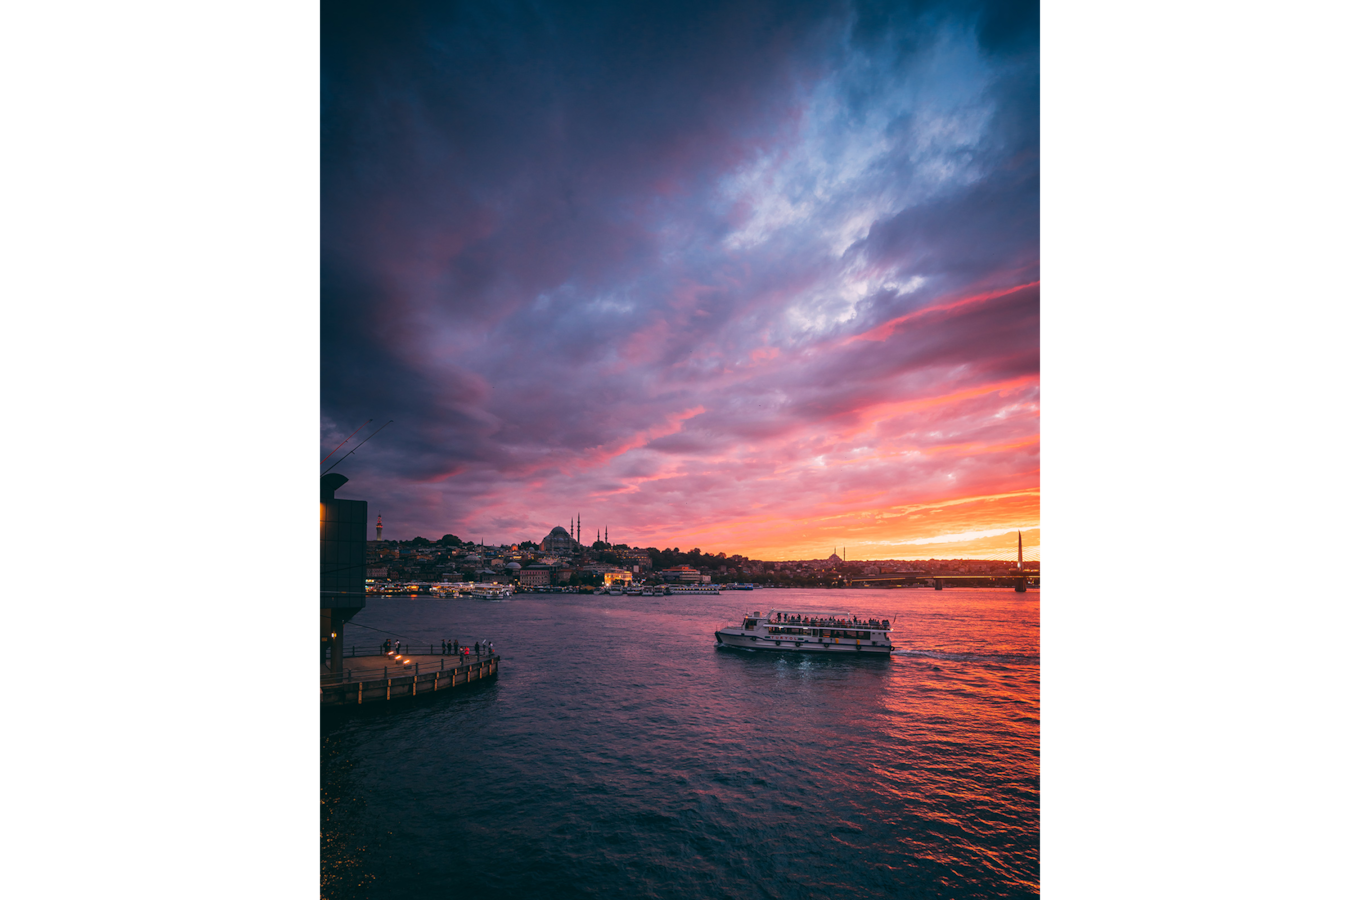 ilkin-karacan-sony-alpha-7RII-sunset-over-the-harbour-as-a-ship-sails-across-the-water